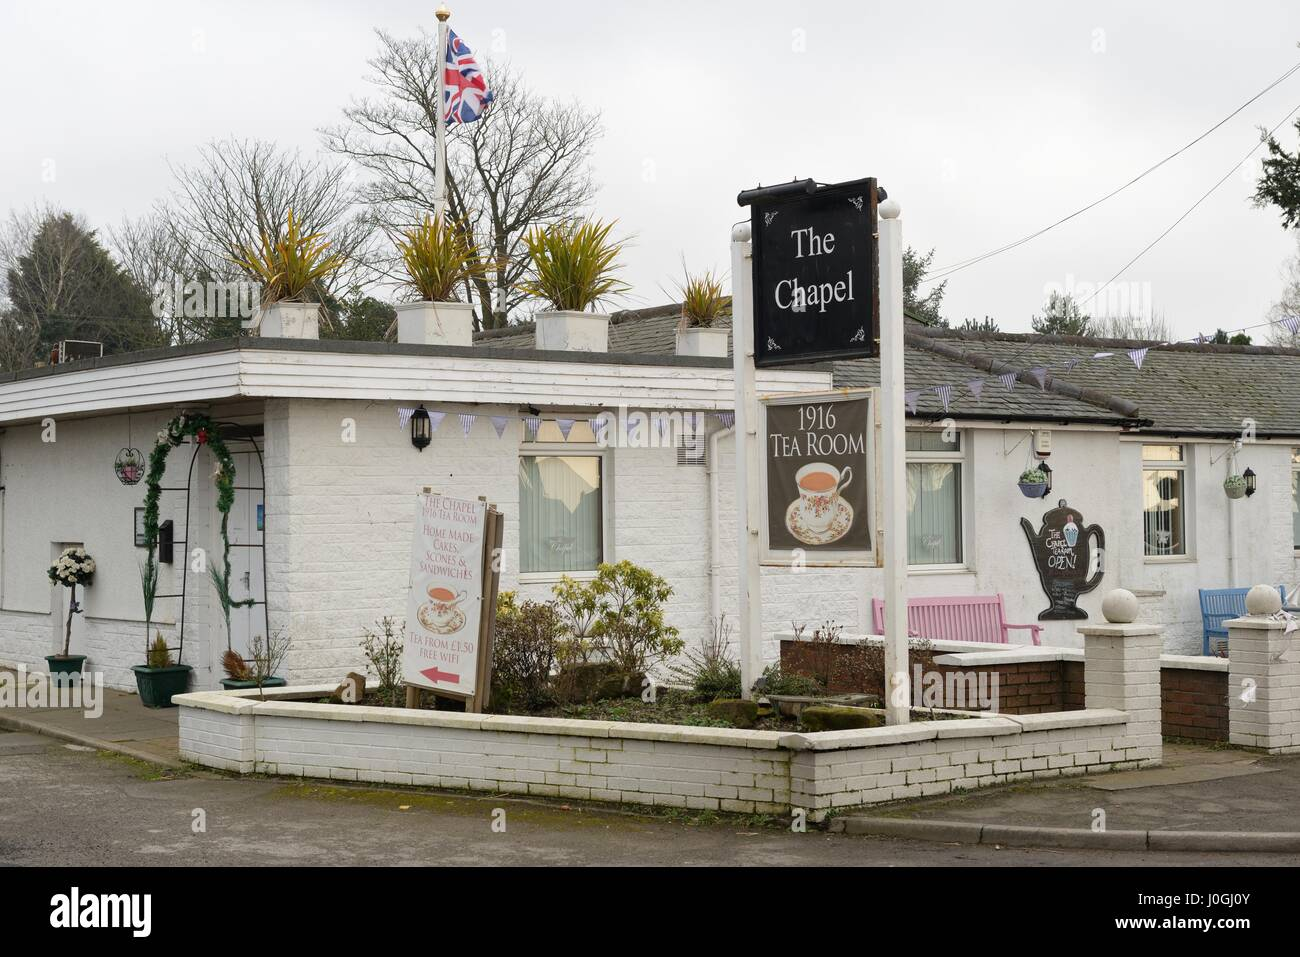 The Chapel tearoom in Dumfries and Galloway, Gretna Green, Scotland, UK - Stock Image